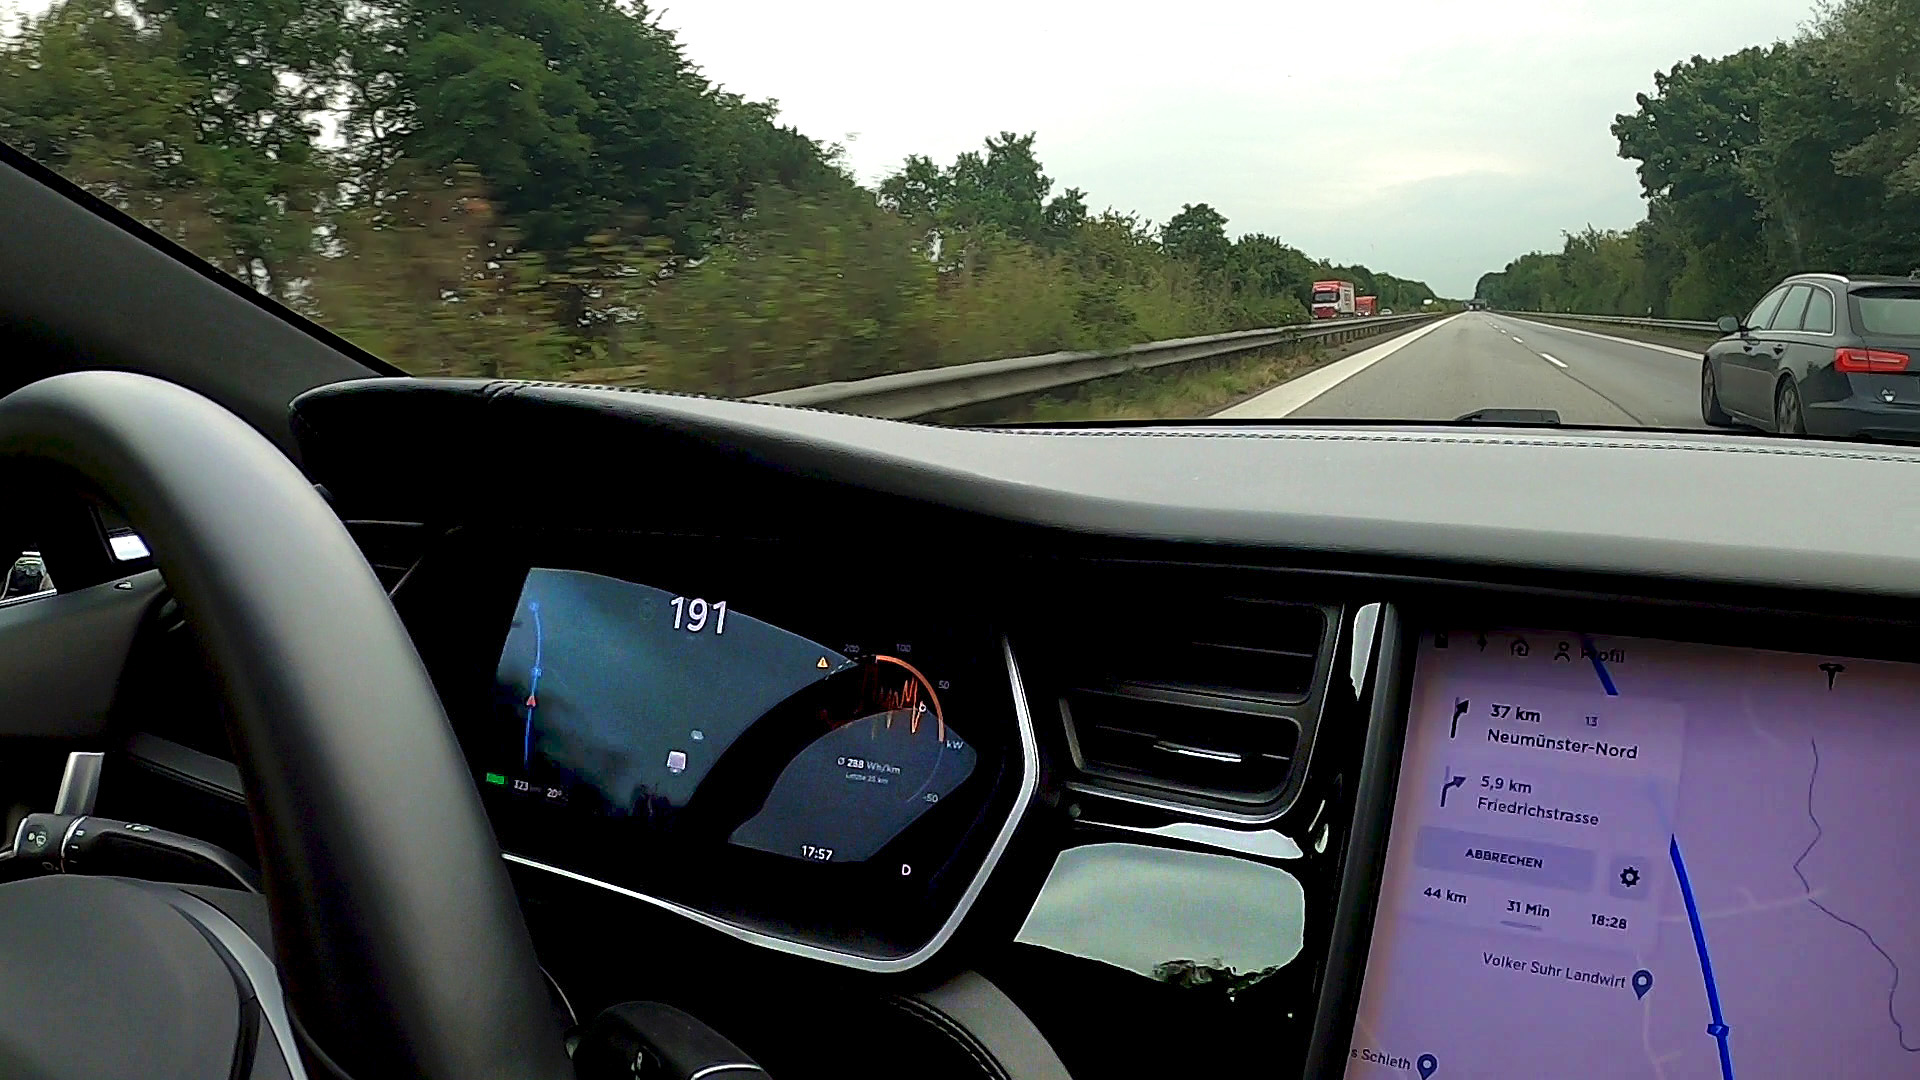 Model S overtaking an Audi A6 at 191 km/h (118.69 mph) on the Autobahn